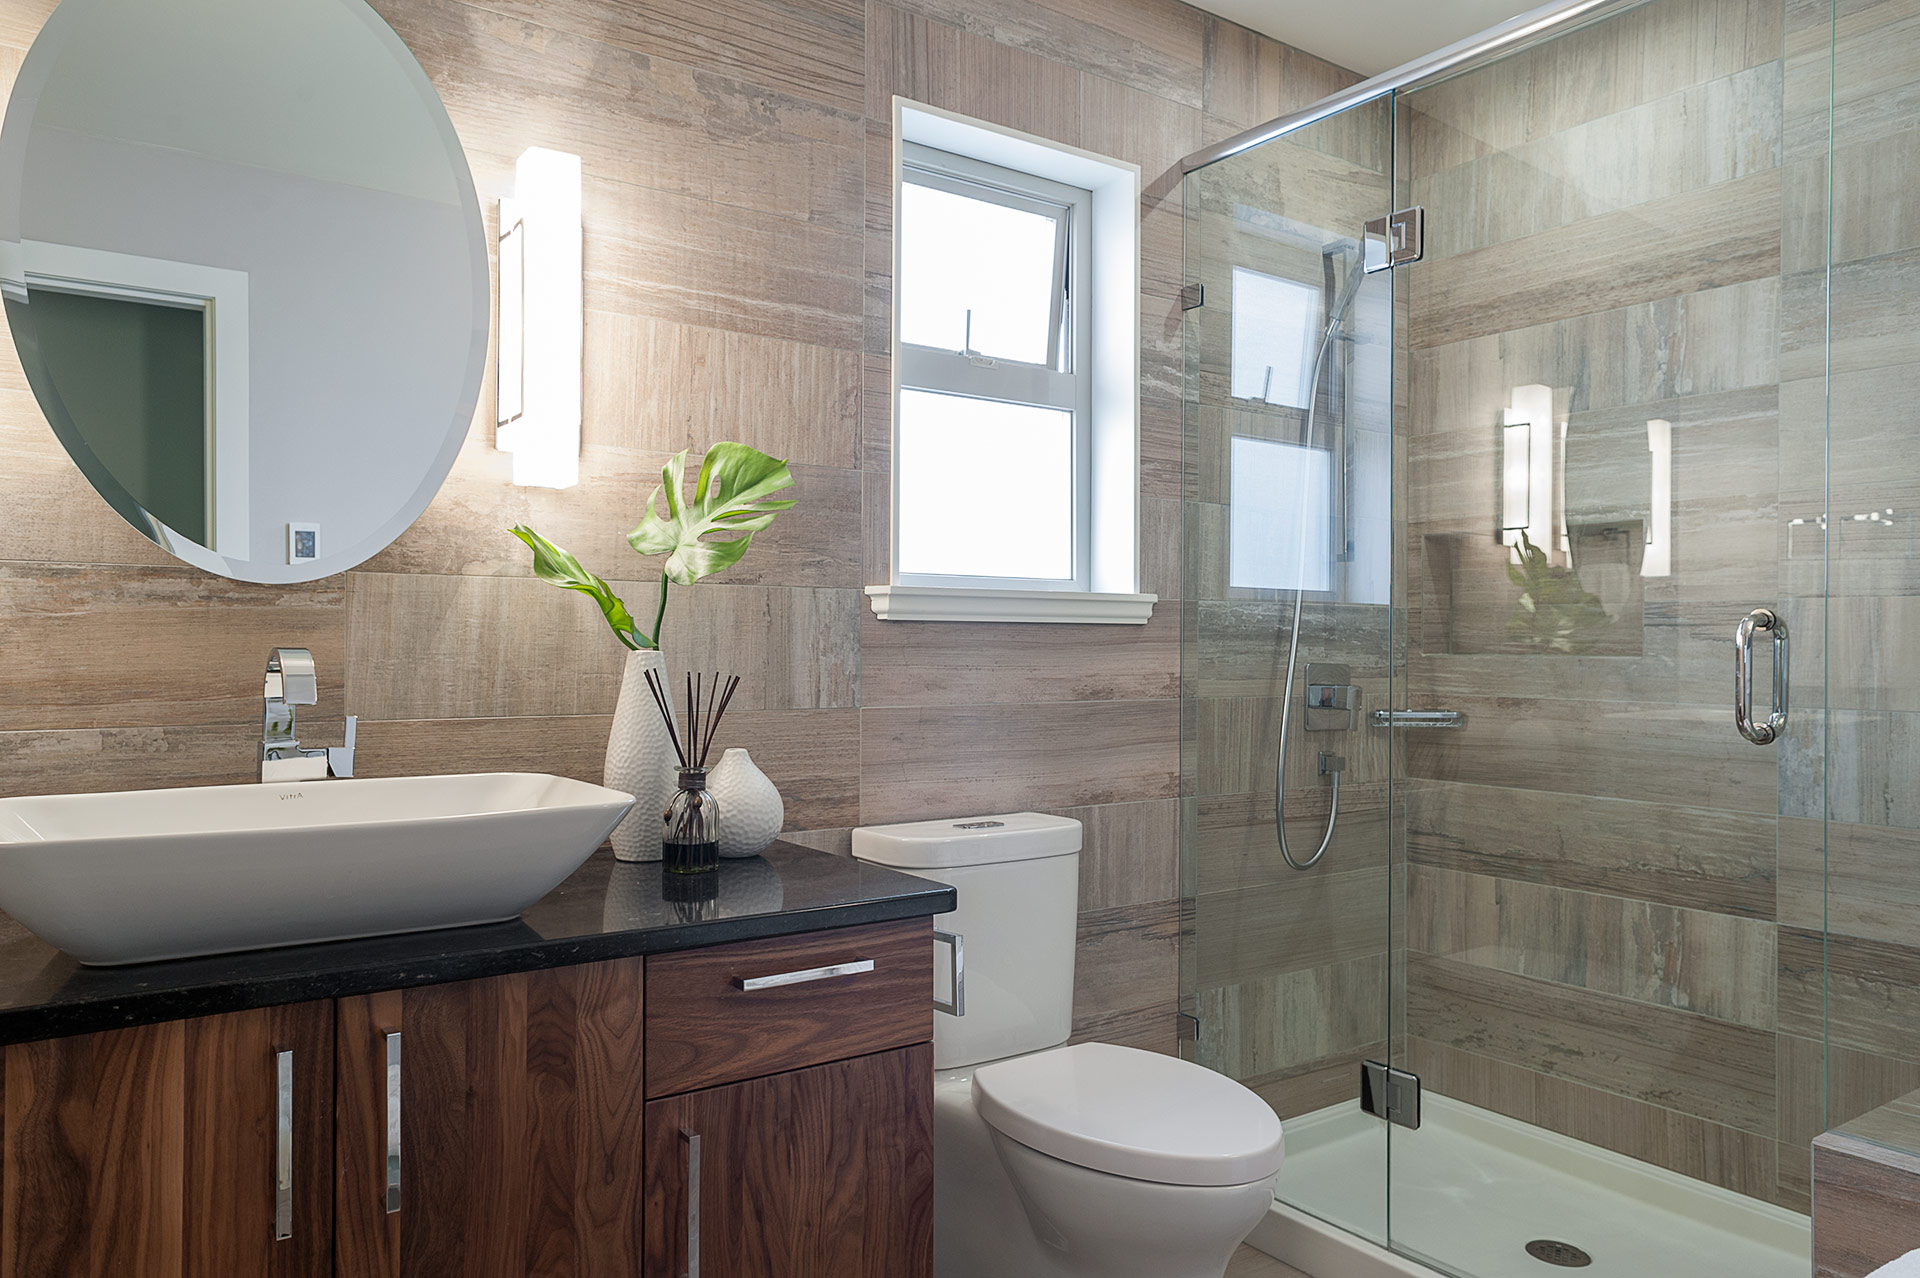 Small bathroom renovation loaded with style modern home for Bathroom reno ideas small bathroom